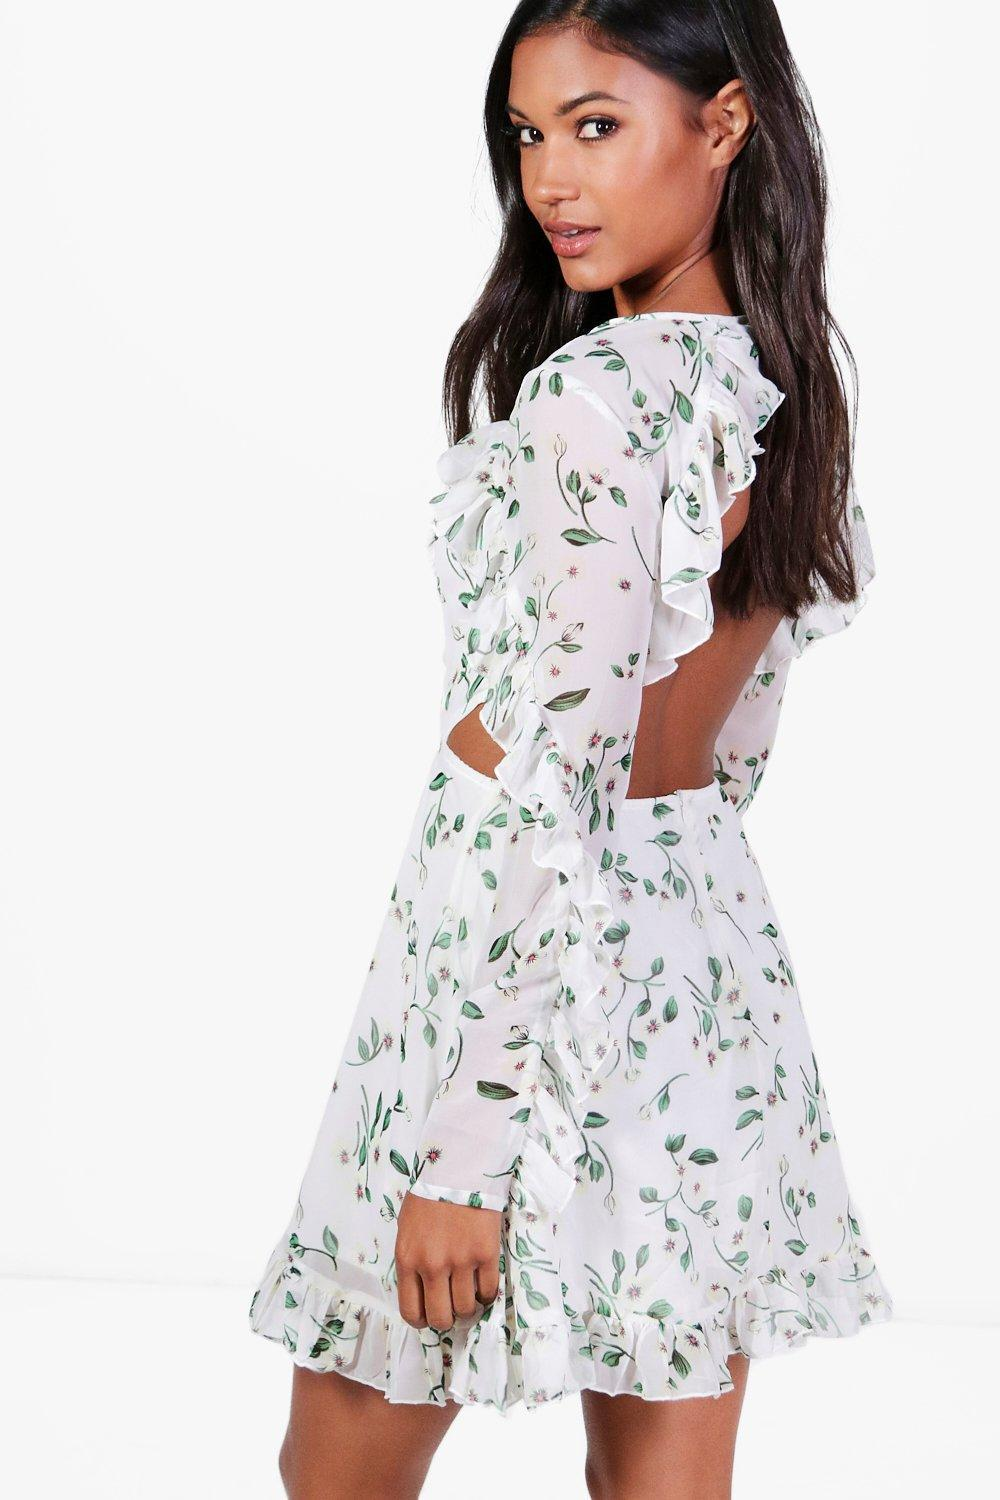 Lyst - Boohoo Sally Chiffon Floral Open Back Skater Dress in White a874efc93